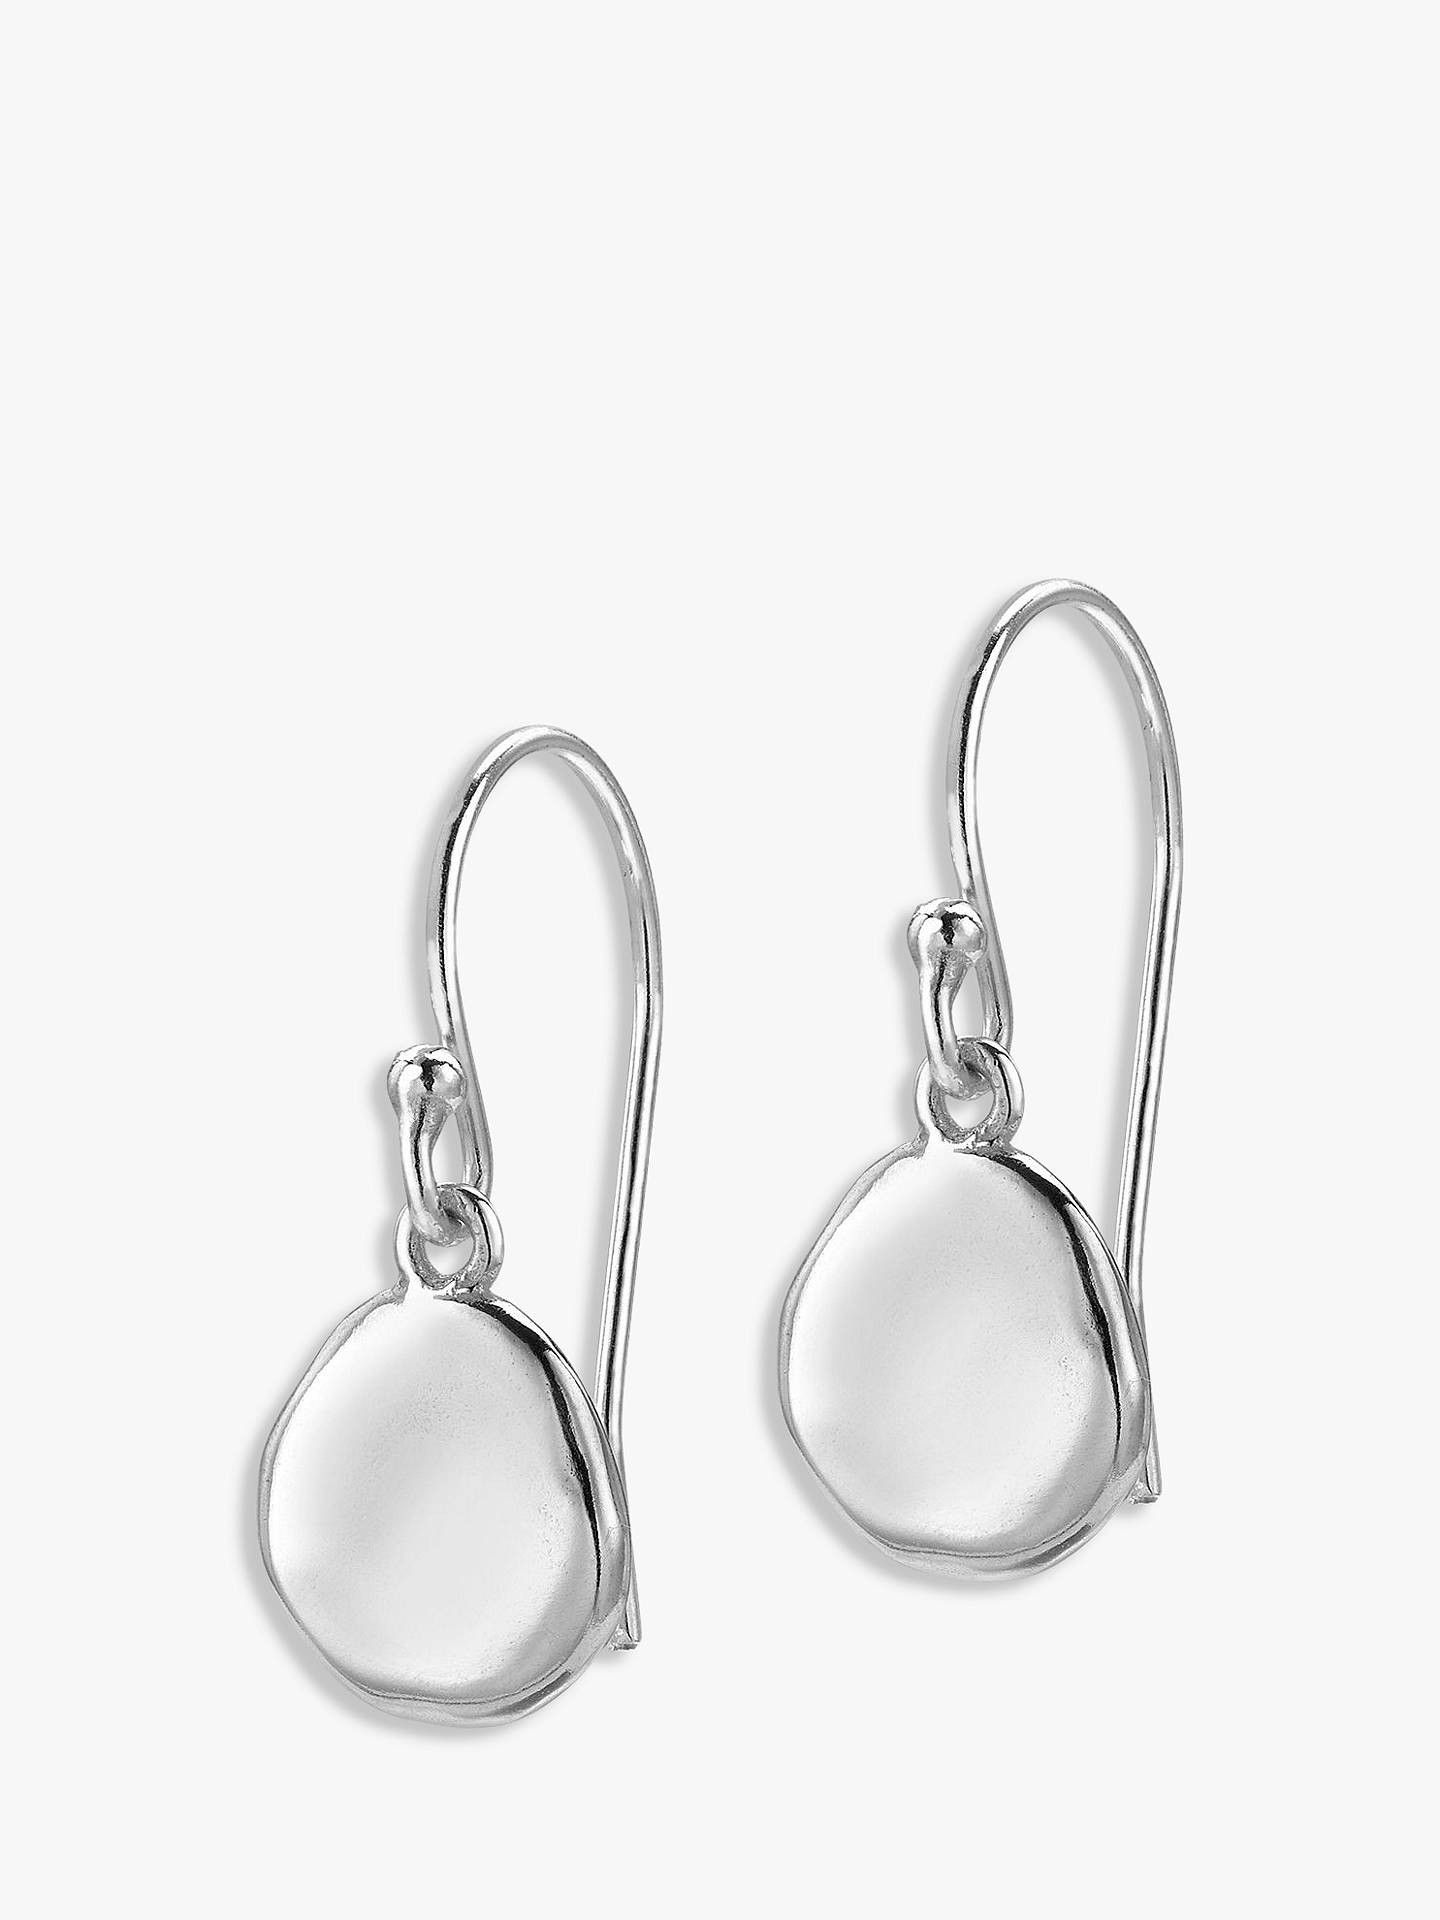 BuyDower & Hall Pebble Drop Earrings, Silver Online at johnlewis.com